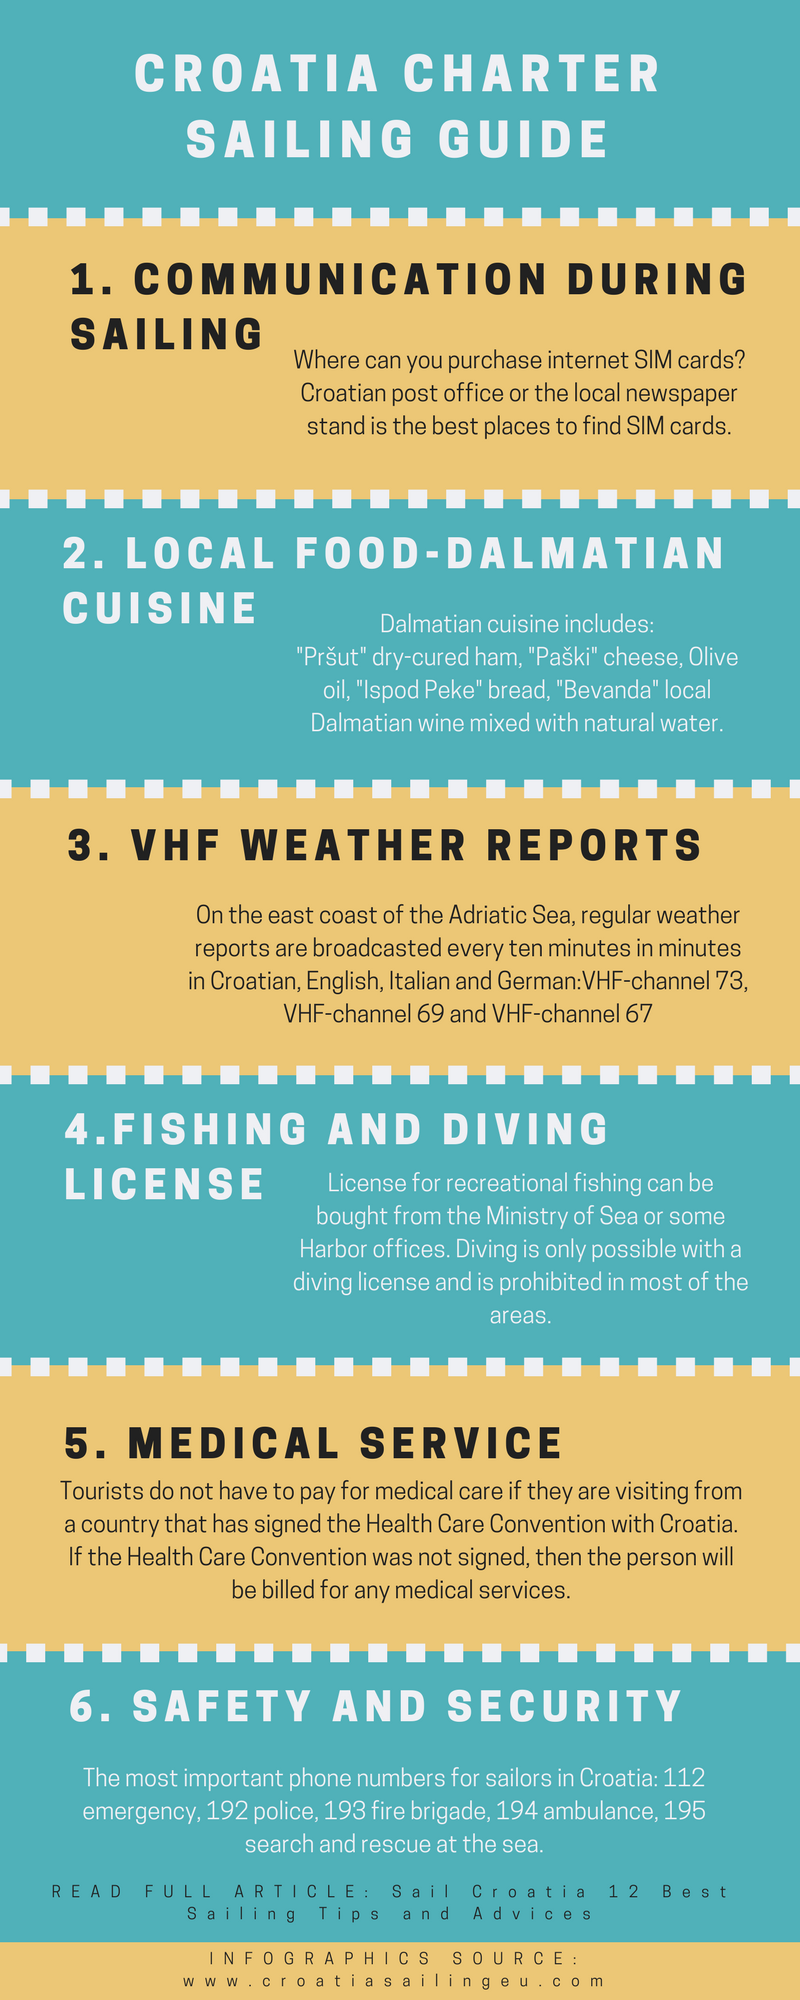 Sail-Croatia-12-Best-Sailing-Tips-and-Advices-Infographic